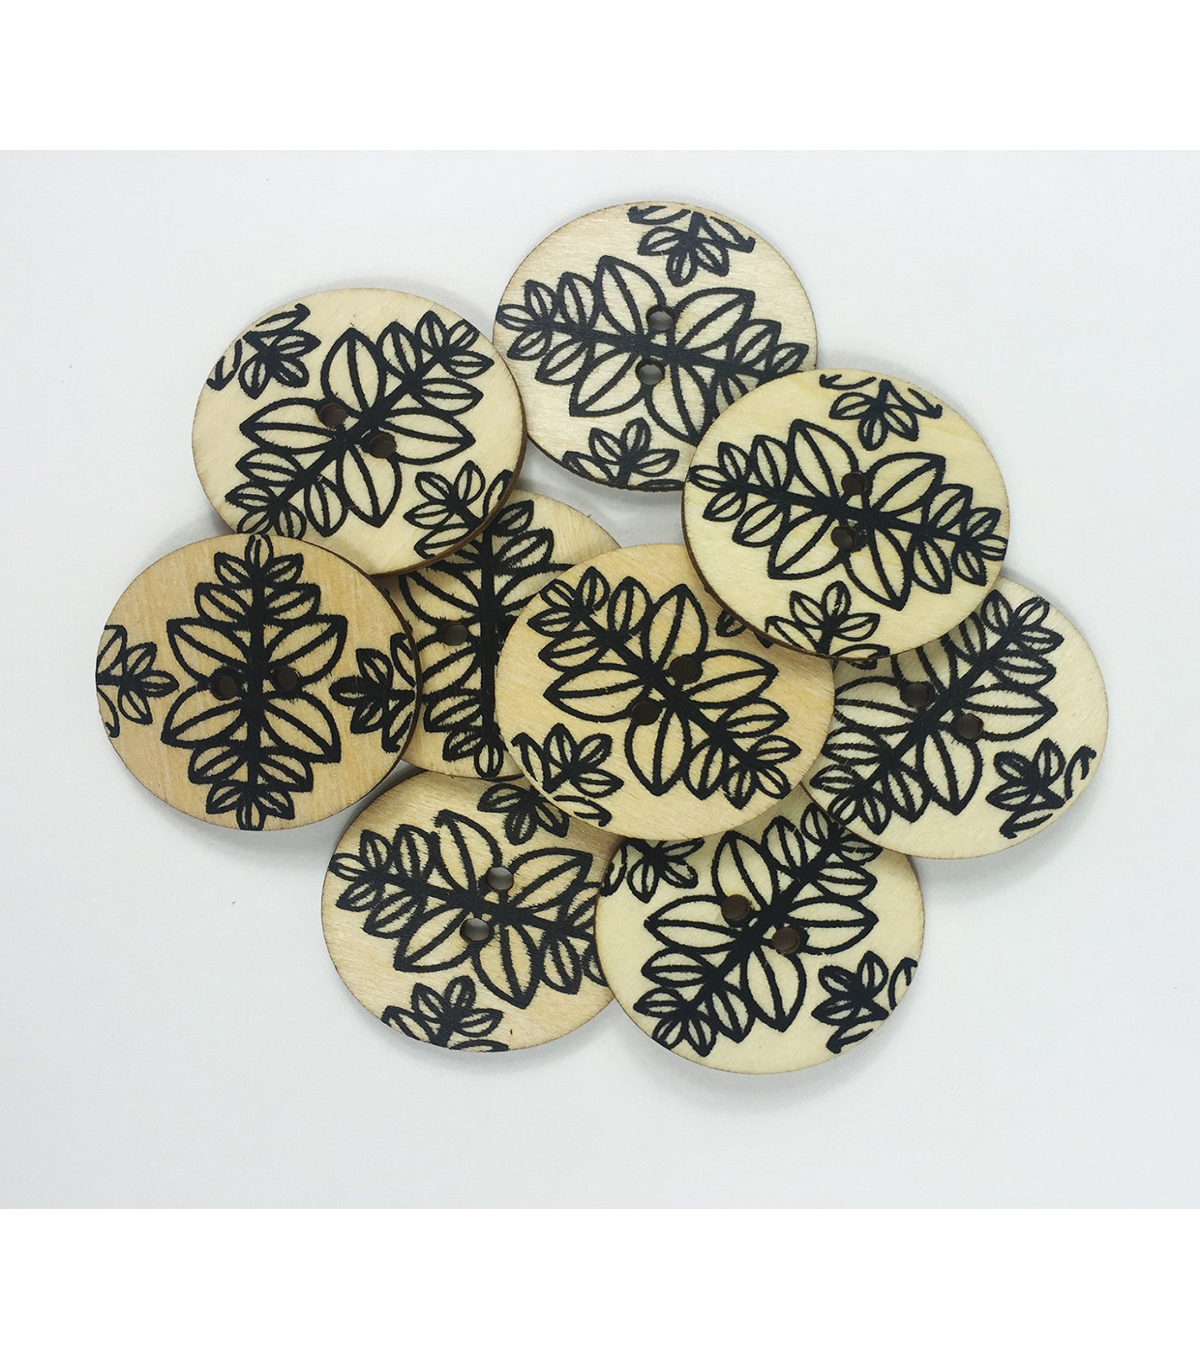 "Organic Elements Wood Buttons 1.25""-Black & White Leaf Pattern"